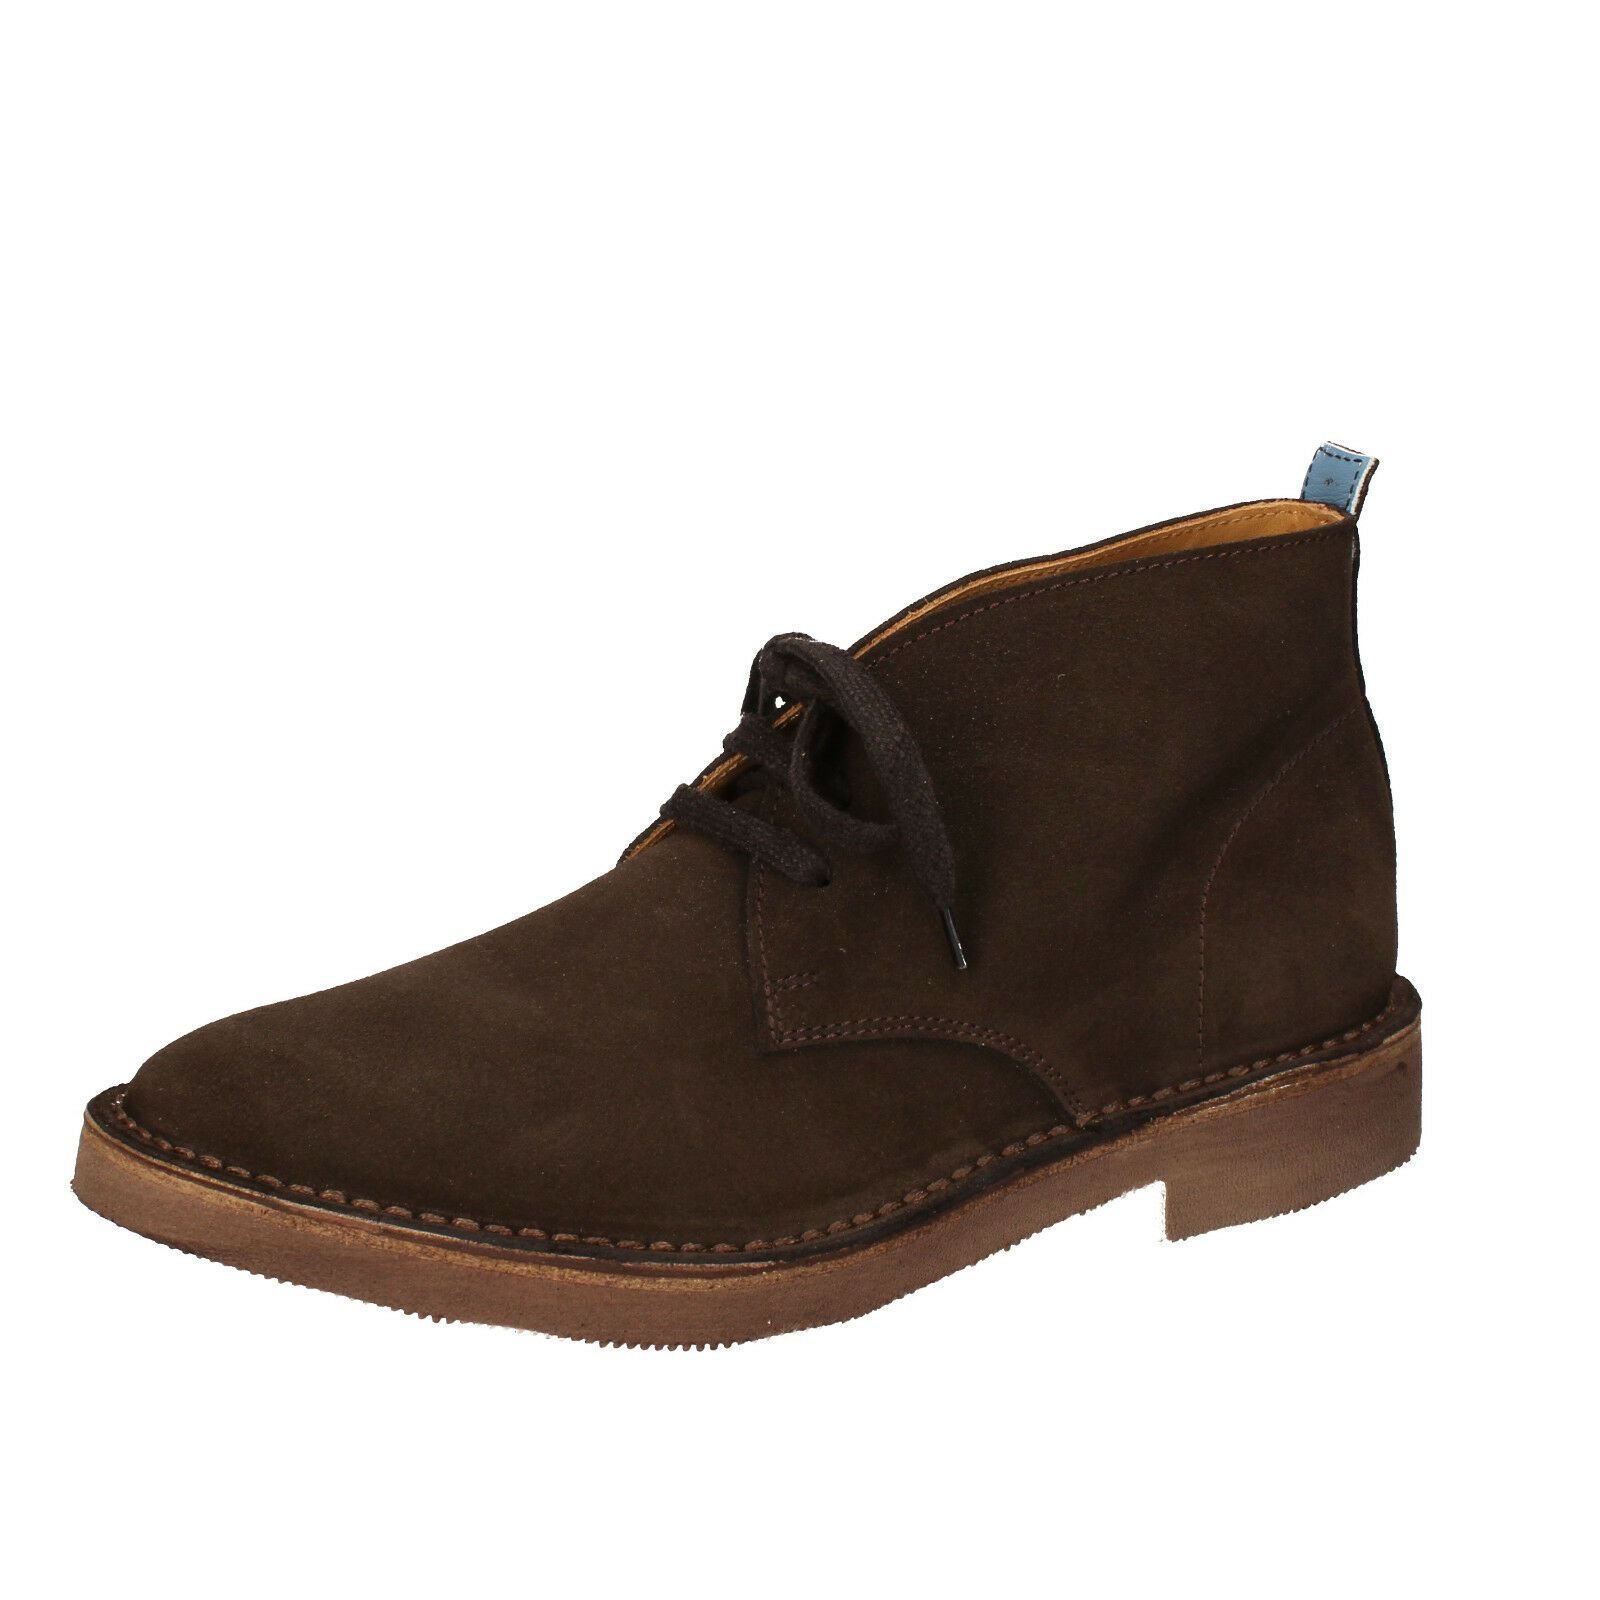 Men's shoes MOMA 7 () desert boots brown suede AB331-C